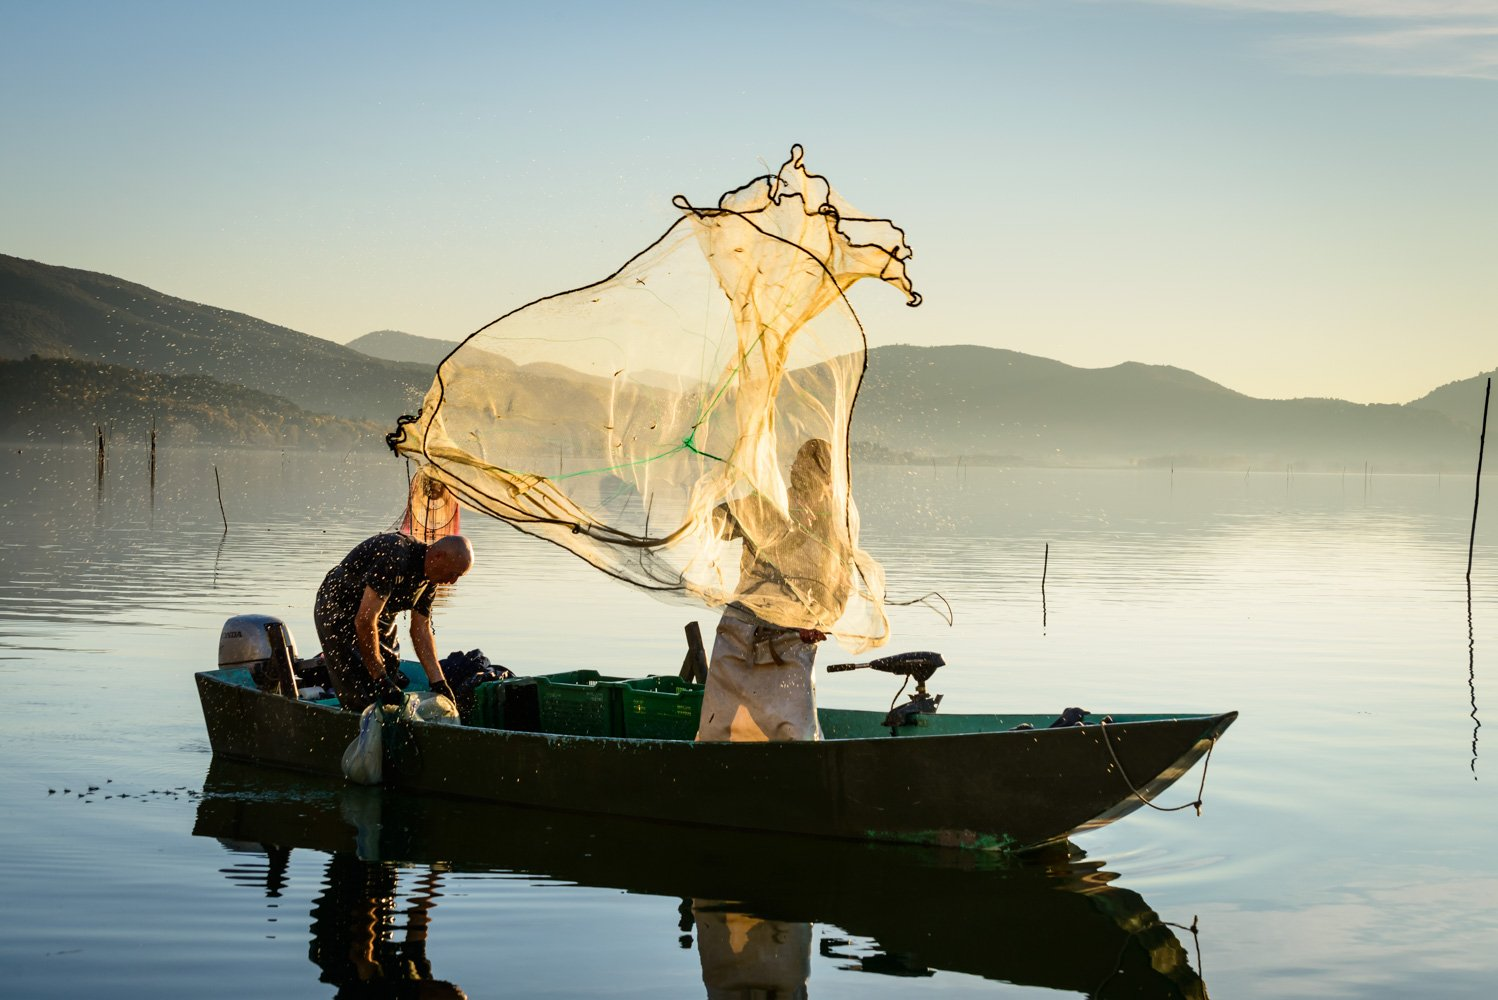 Fishing at Trasimeno Lake, Umbria, Italy ©AndrewJonesfoto.com